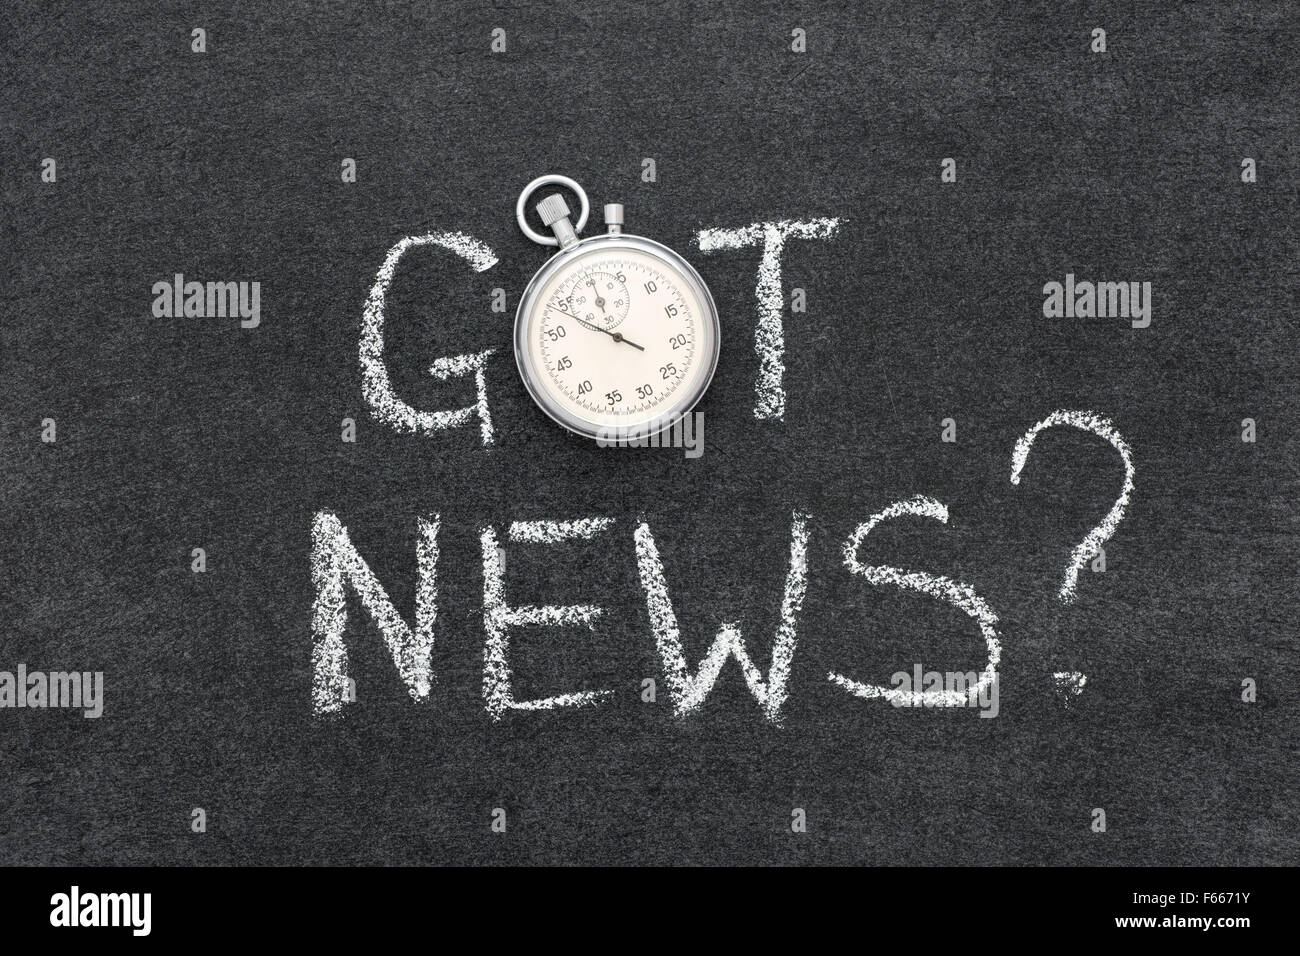 got news question handwritten on chalkboard with vintage precise stopwatch used instead of O - Stock Image